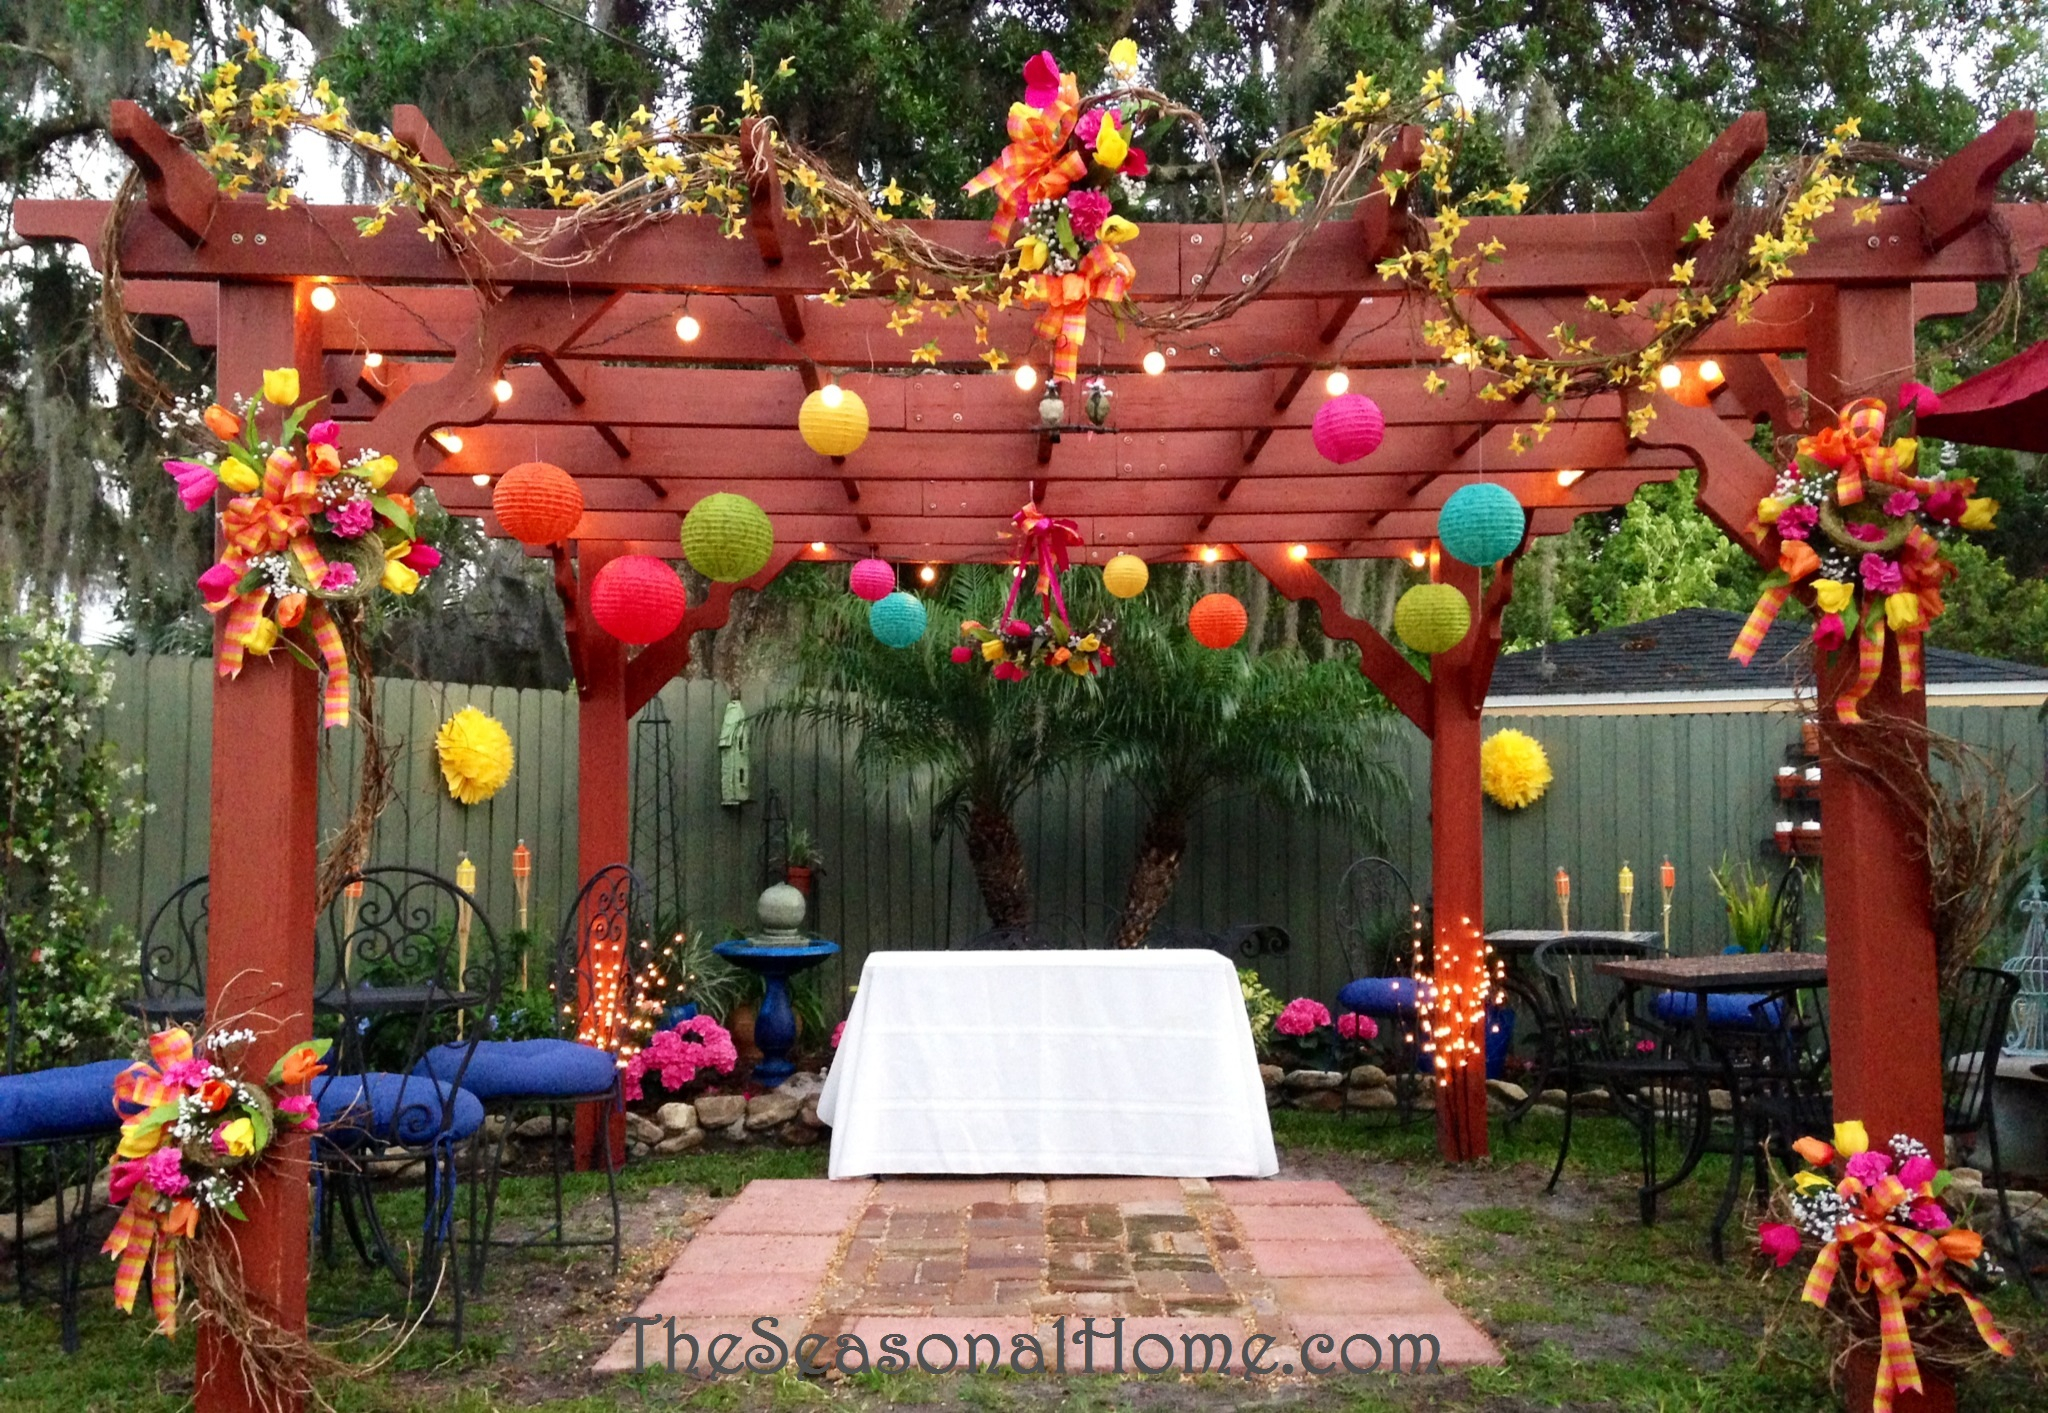 Ideas For A Budget Friendly Nostalgic Backyard Wedding Reception throughout 13 Some of the Coolest Ideas How to Craft Small Backyard Wedding Ideas On A Budget